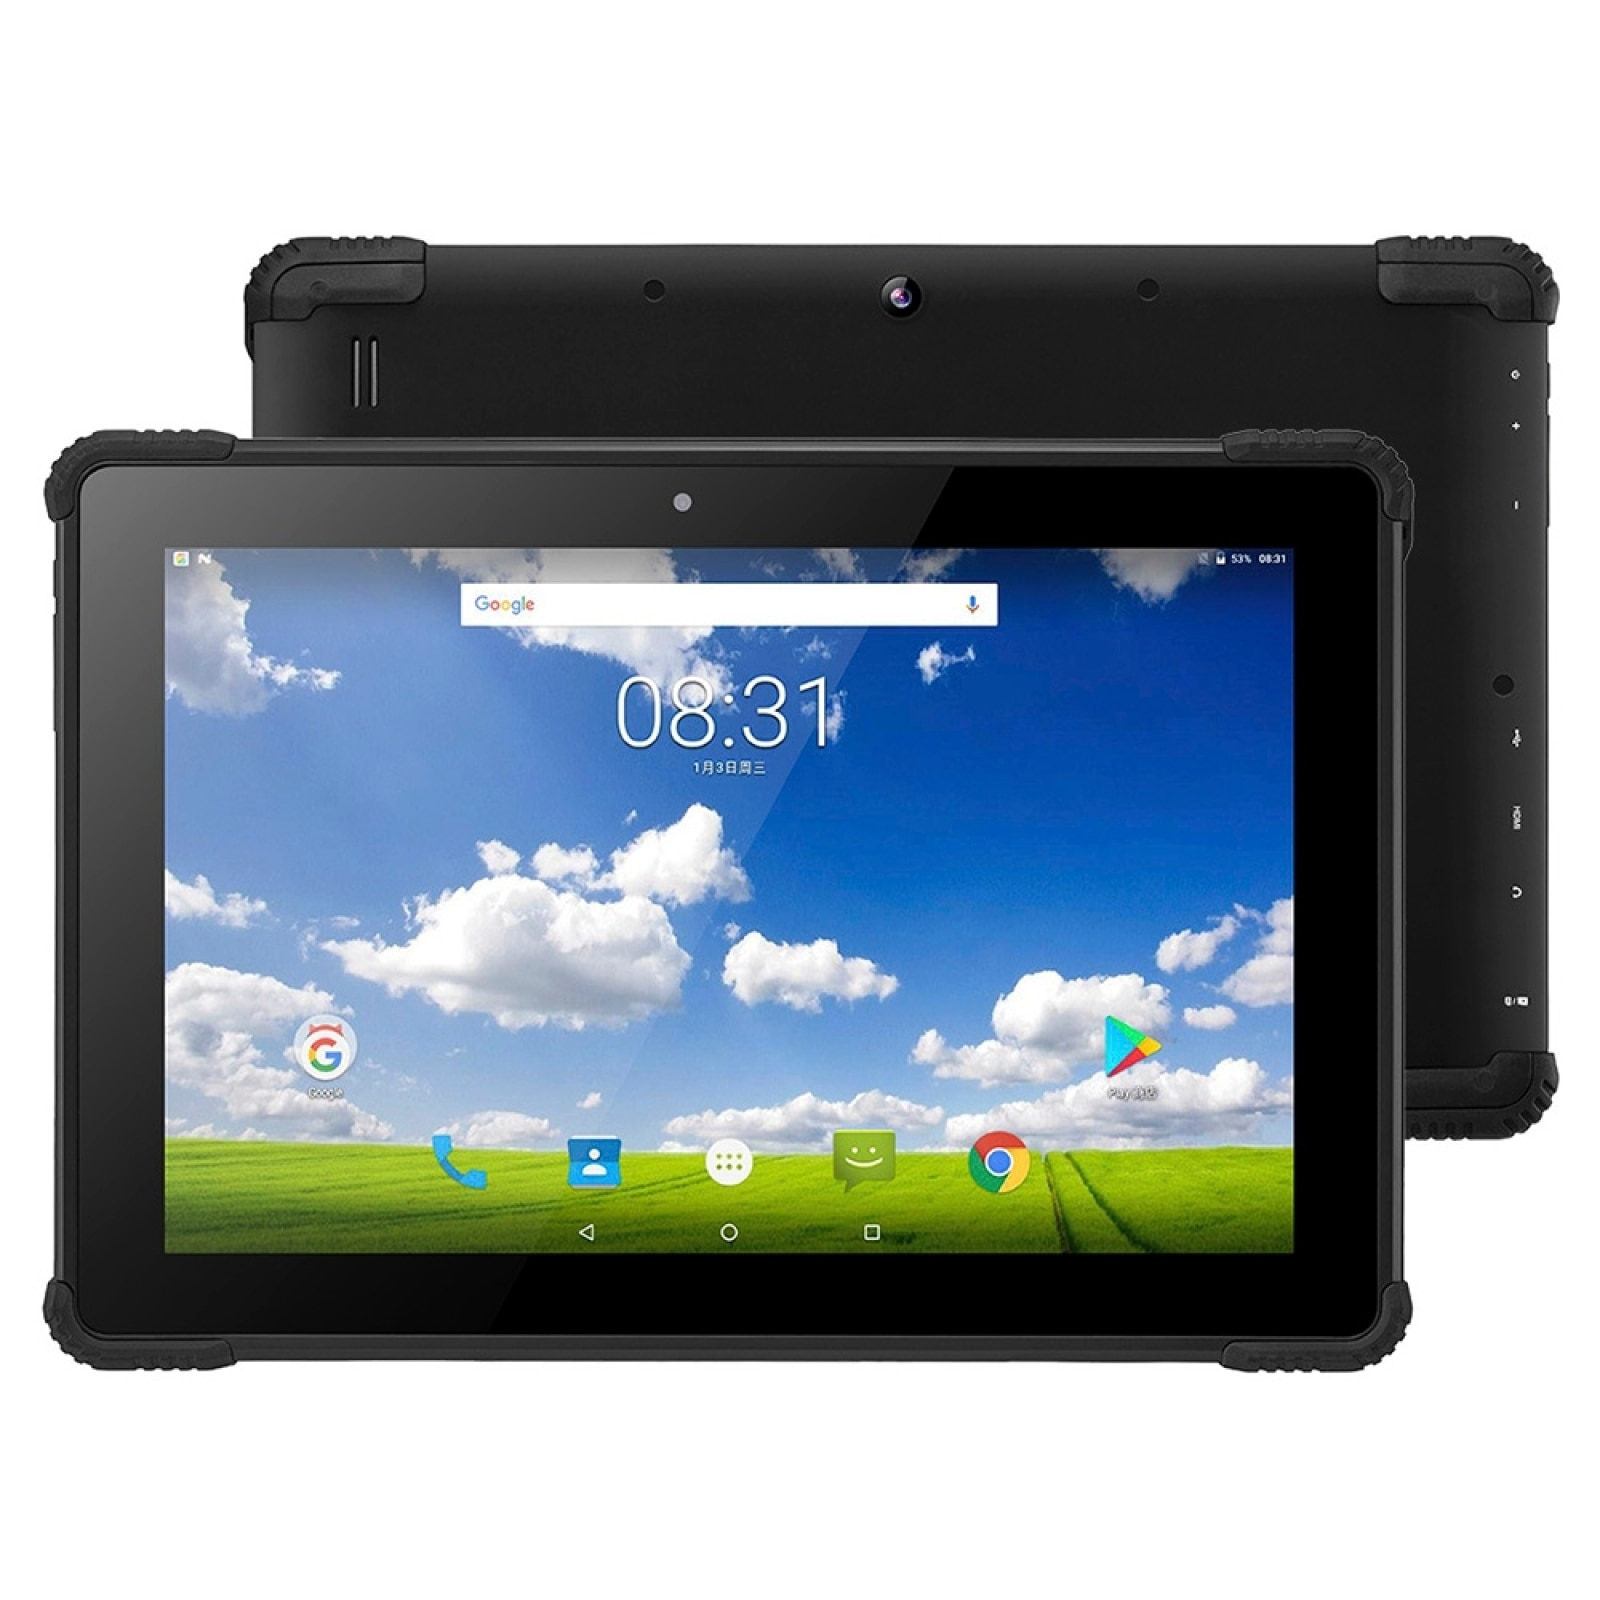 PiPo N1 4G LTE Tablet PC 10.1 inch 2GB 32GB IP54 Waterproof Dustproof Shockproof Android 7.0 MTK8735 Cotex A53 Quad Core GPS